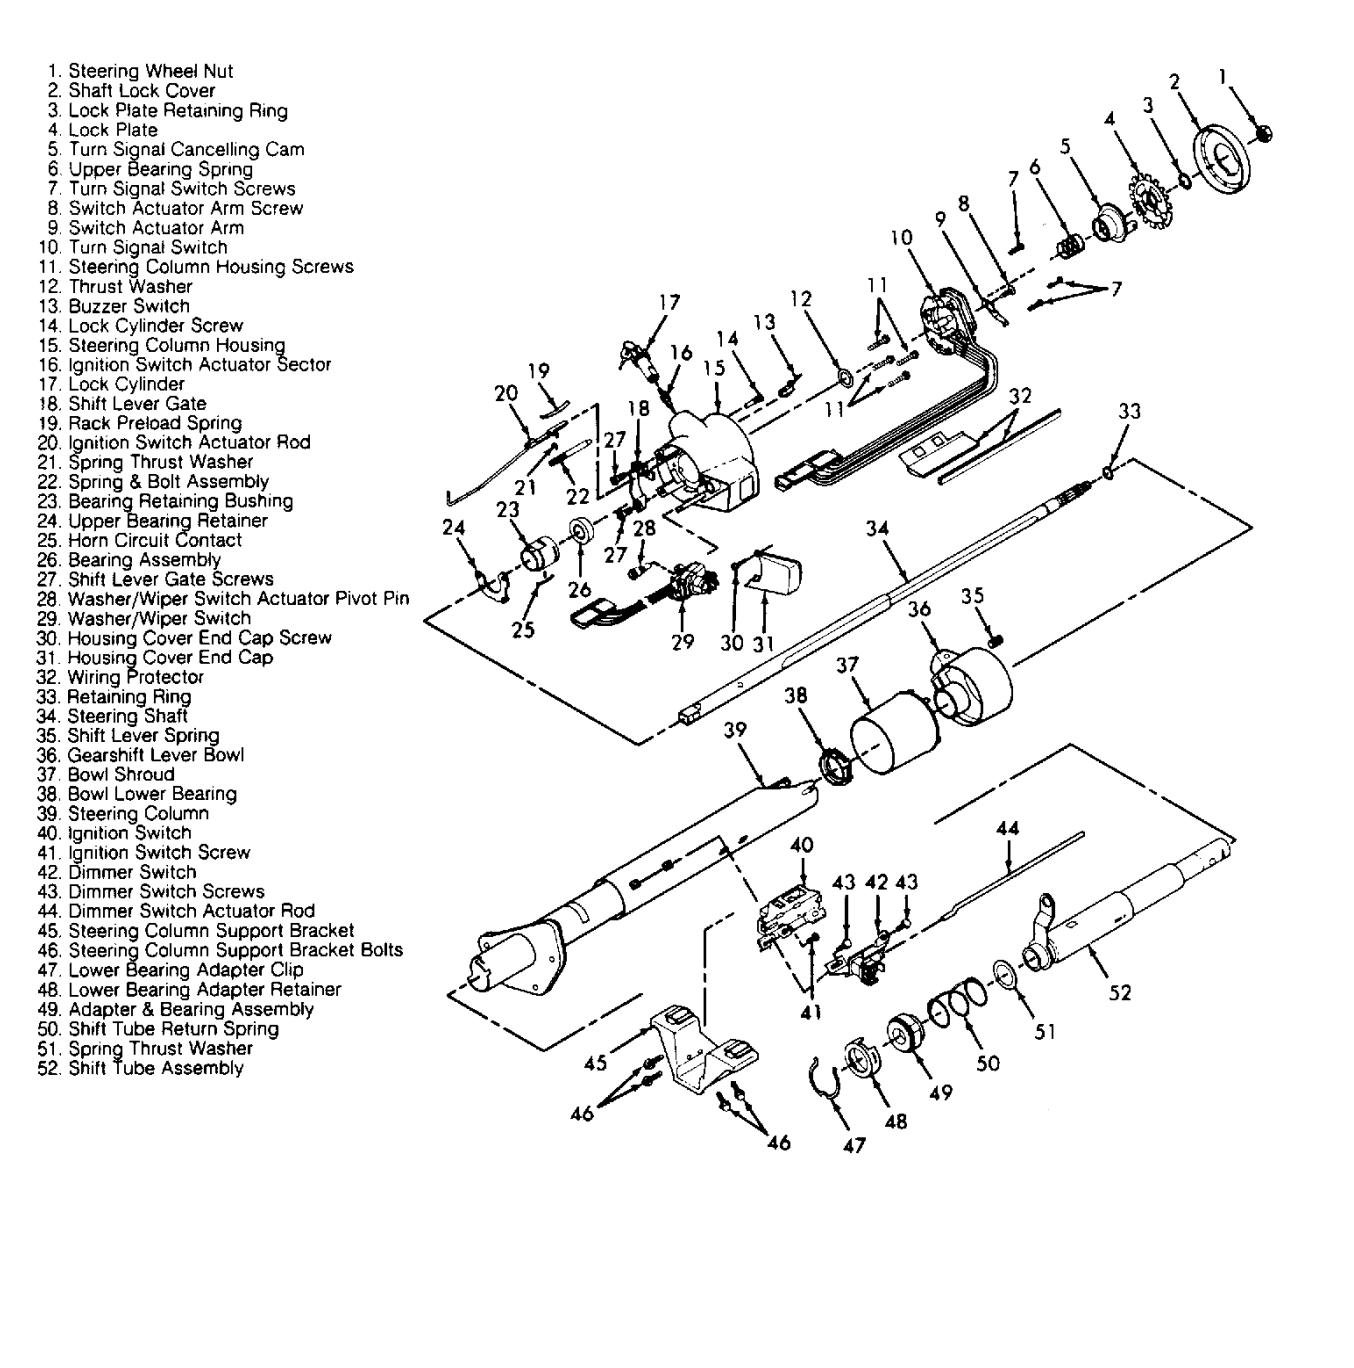 84 Chevy Steering Column Diagram Trusted Wiring Chevrolet Tilt Schematic Diagrams Truck Parts